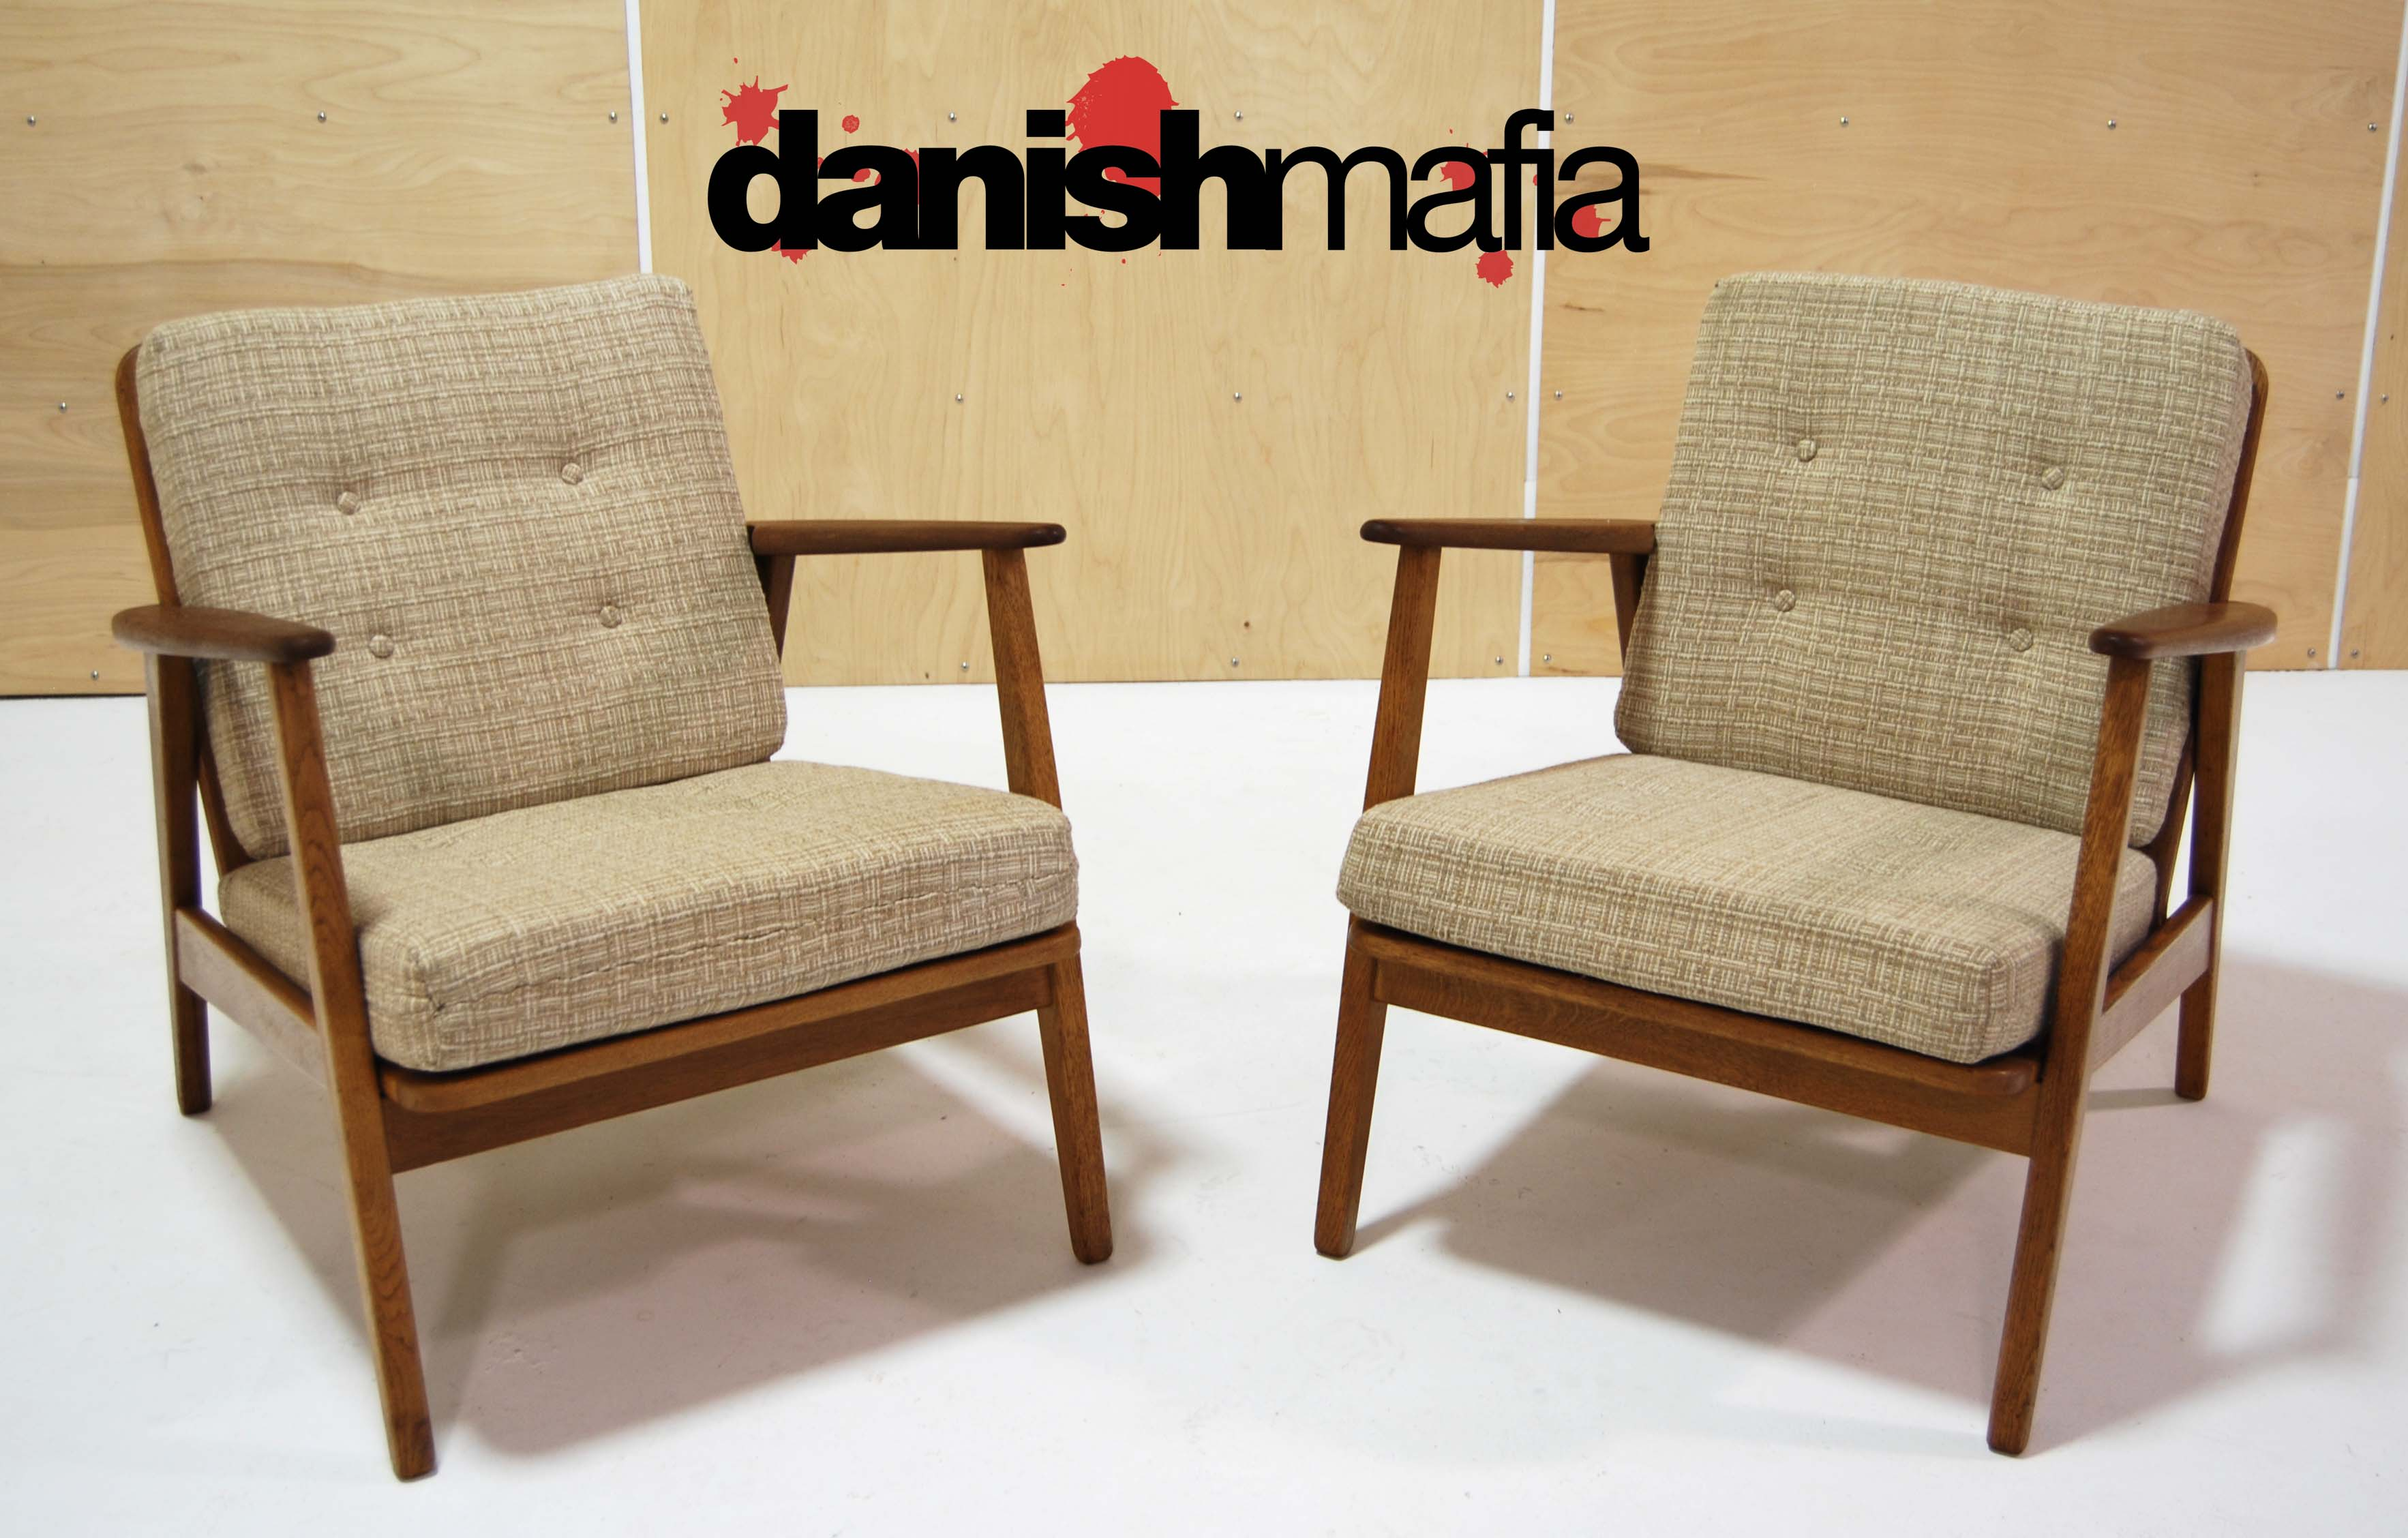 Mid Century Modern Danish Furniture | MyCoffeepot.Org